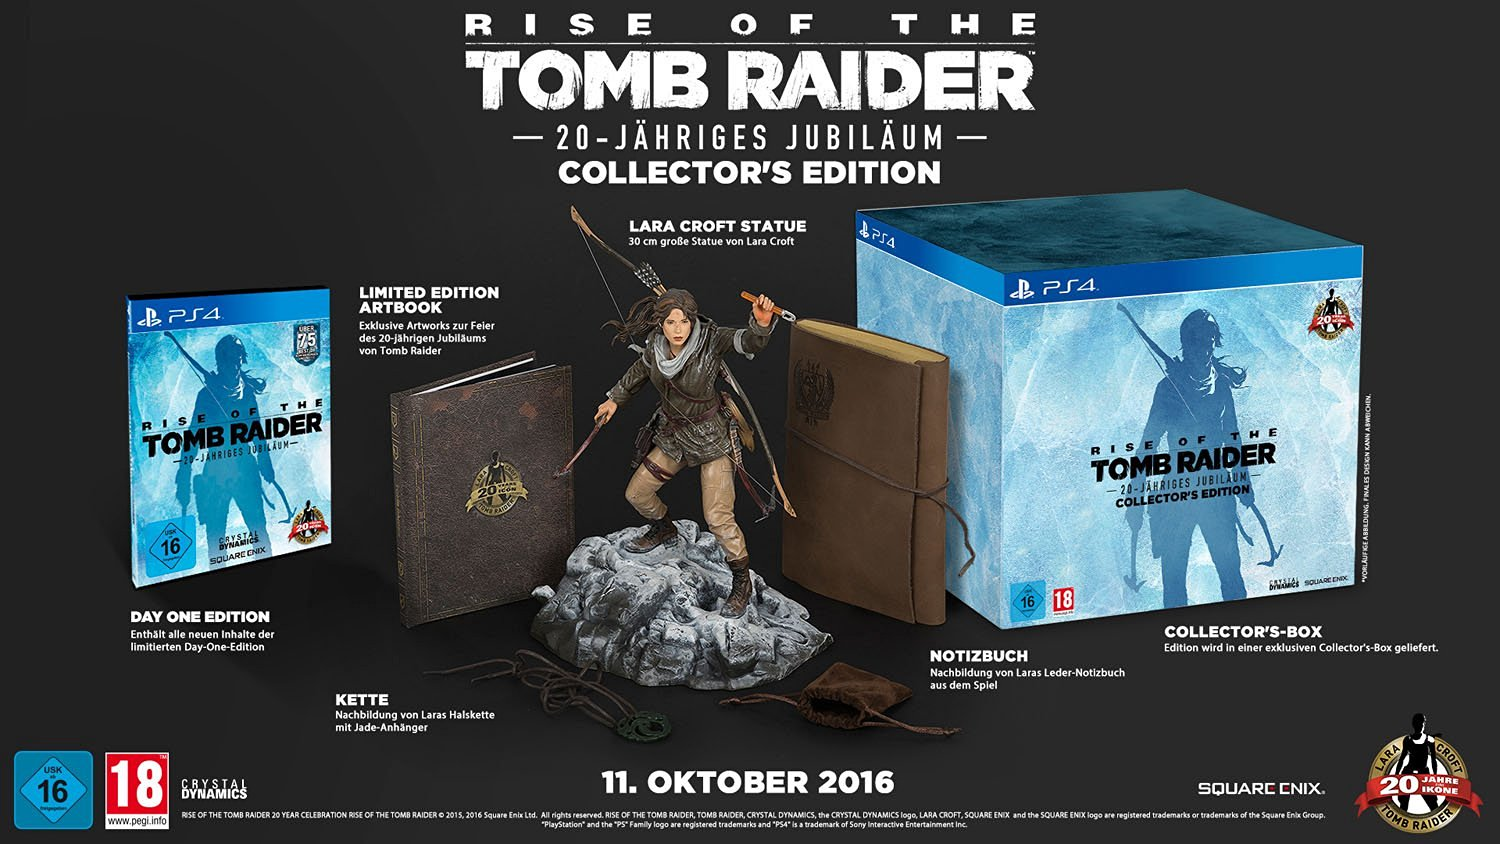 rise-of-the-tomb-raider-collectors-edition | playm.de